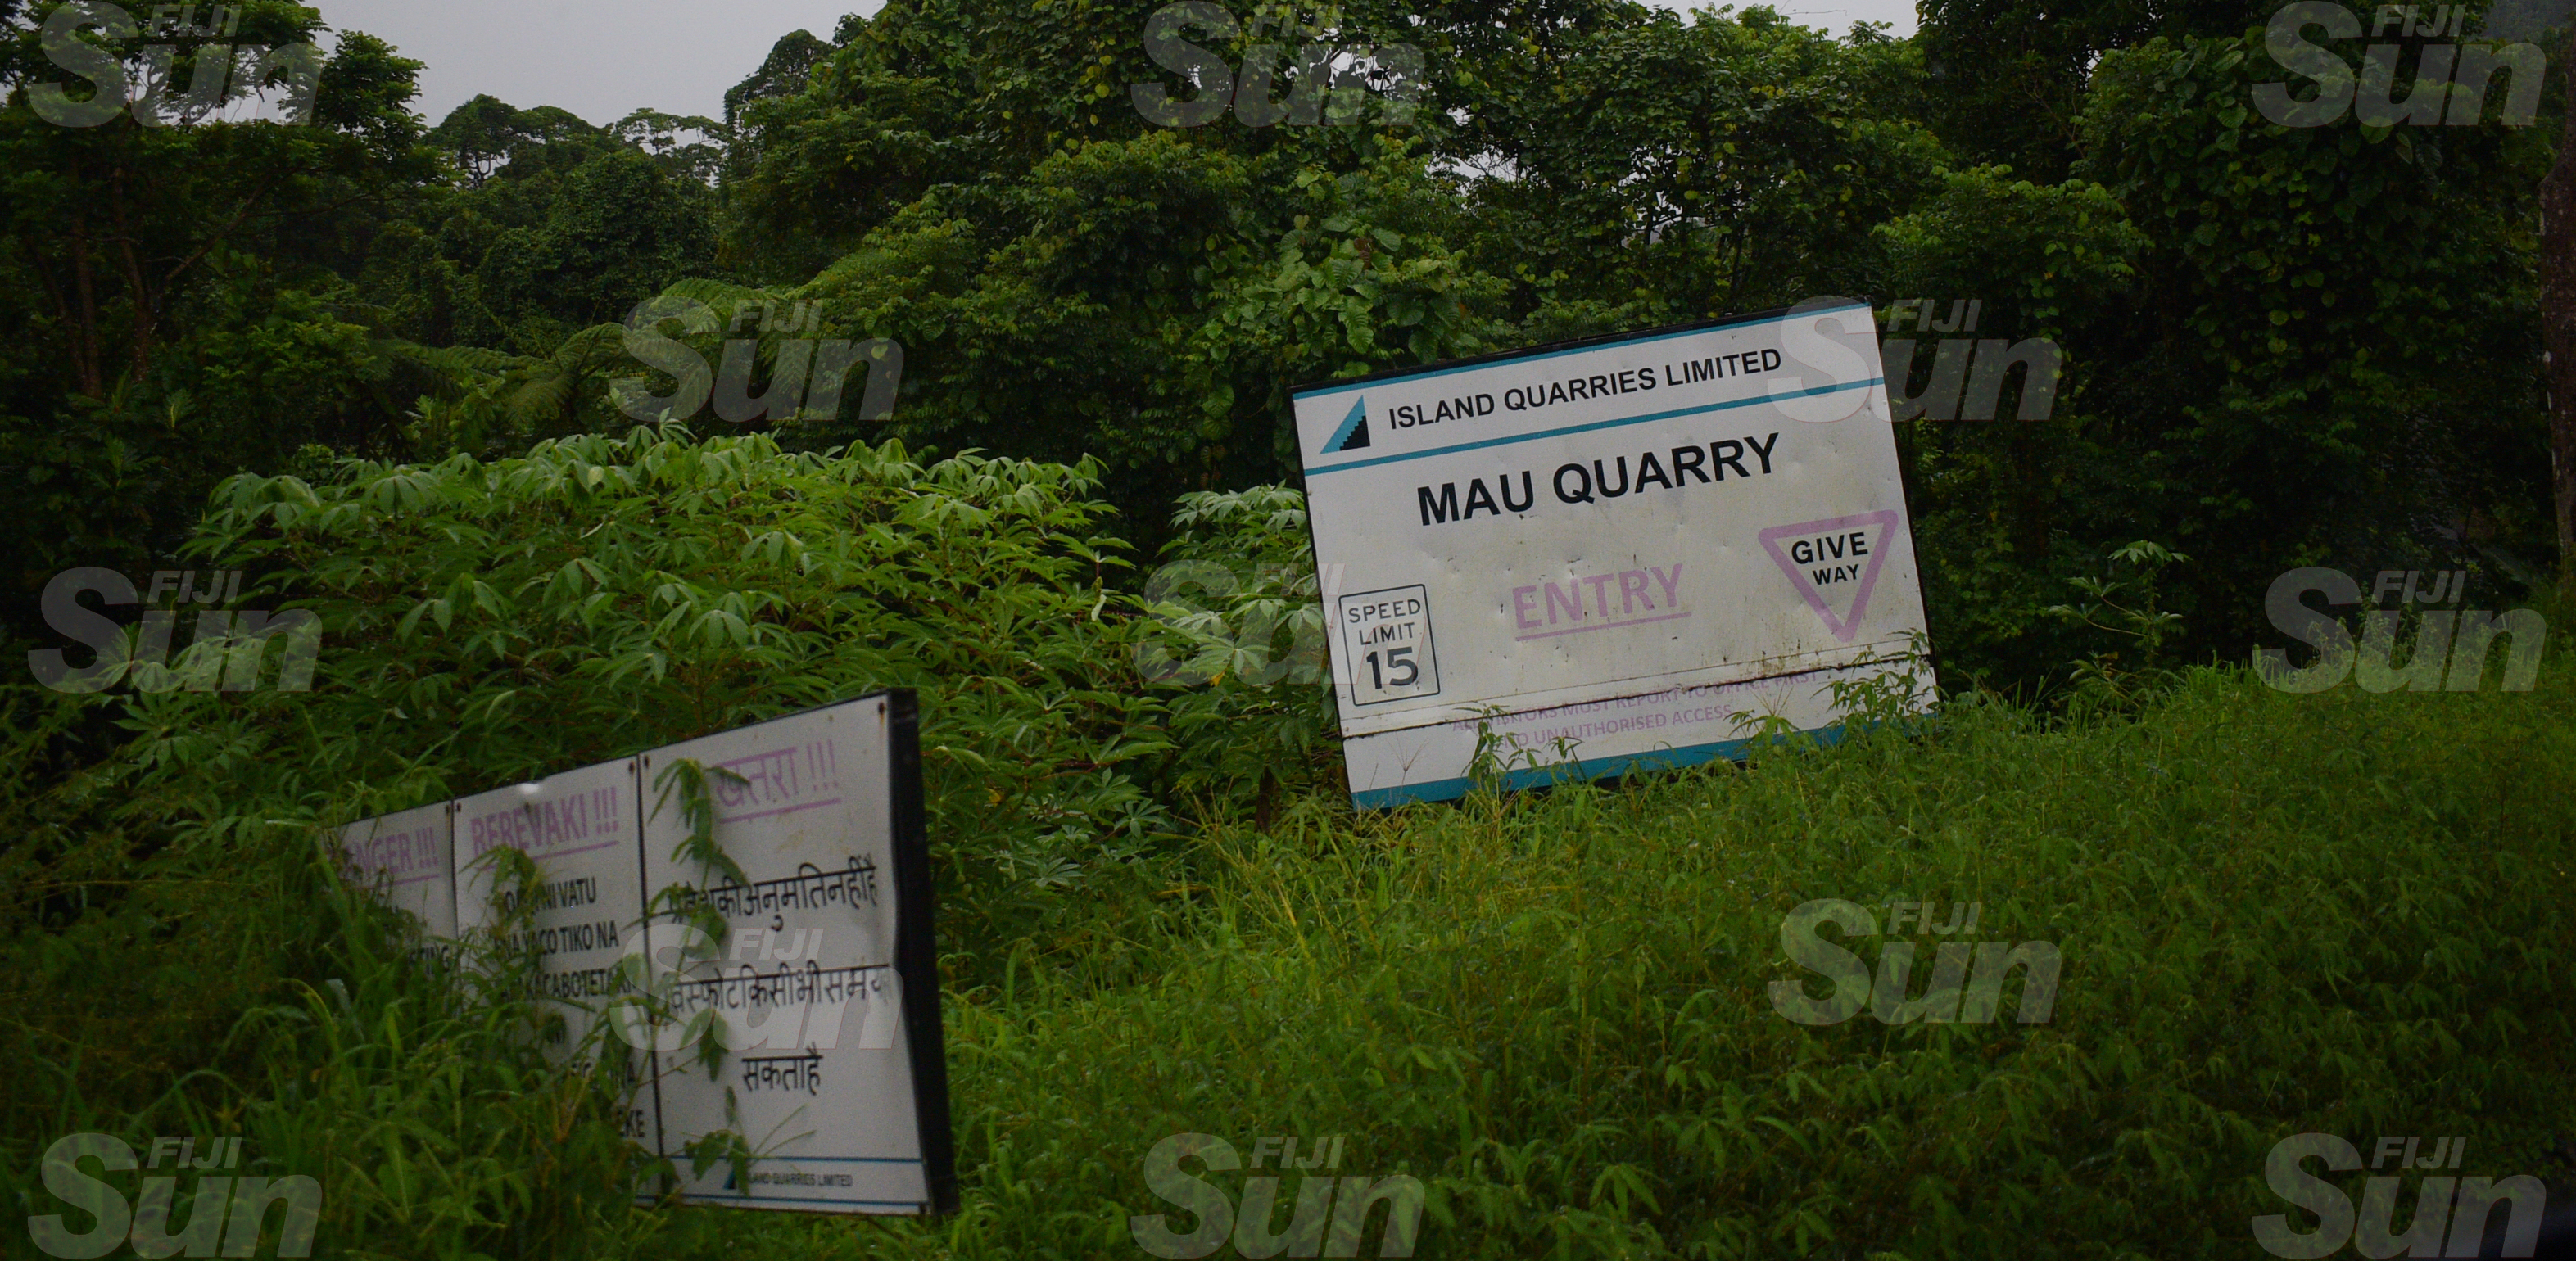 Island Quarries Limited's Mau Quarry, where landslide have claimed three lifes on March 20, 2020. Photo: Ronald Kumar.